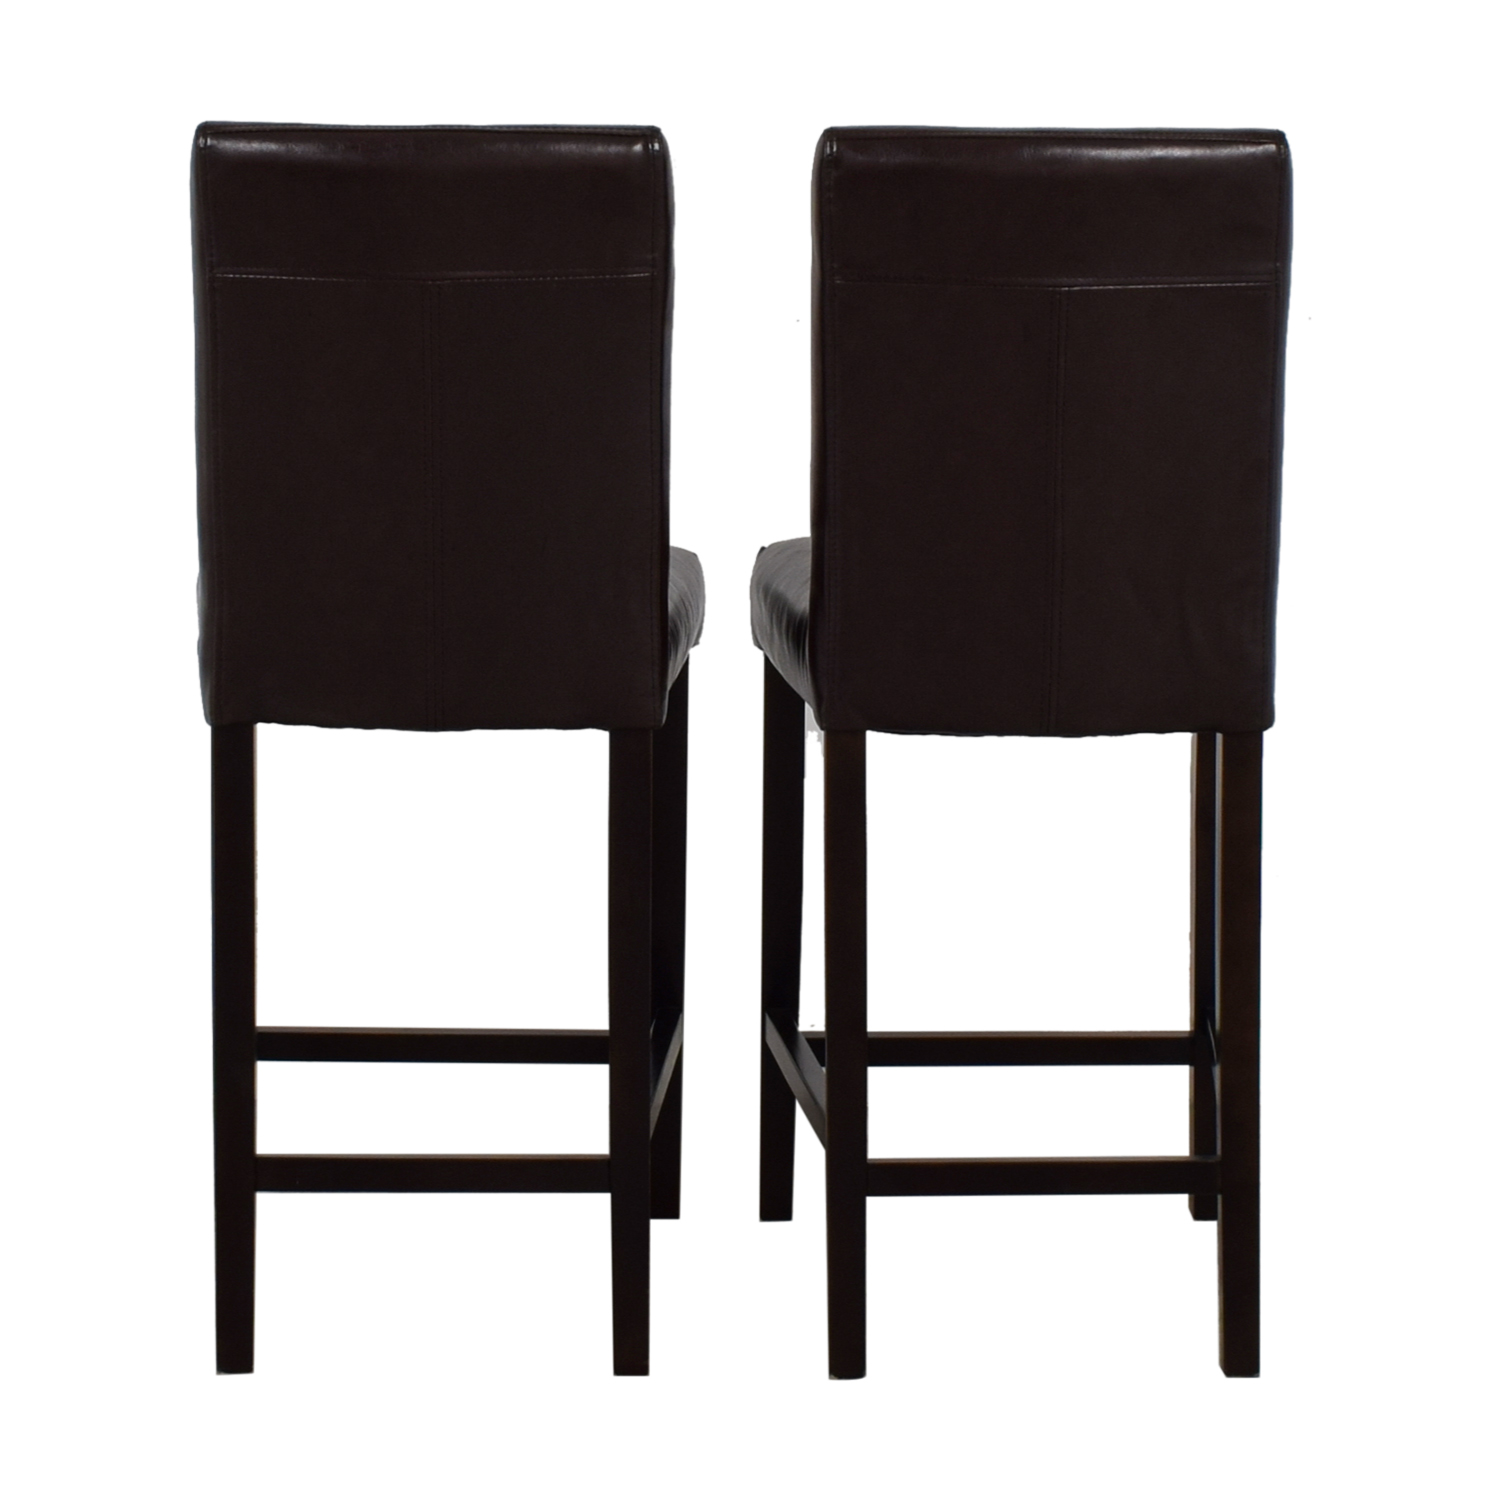 90 Off Pier 1 Pier 1 Imports Mason Brown Bar Stools Chairs